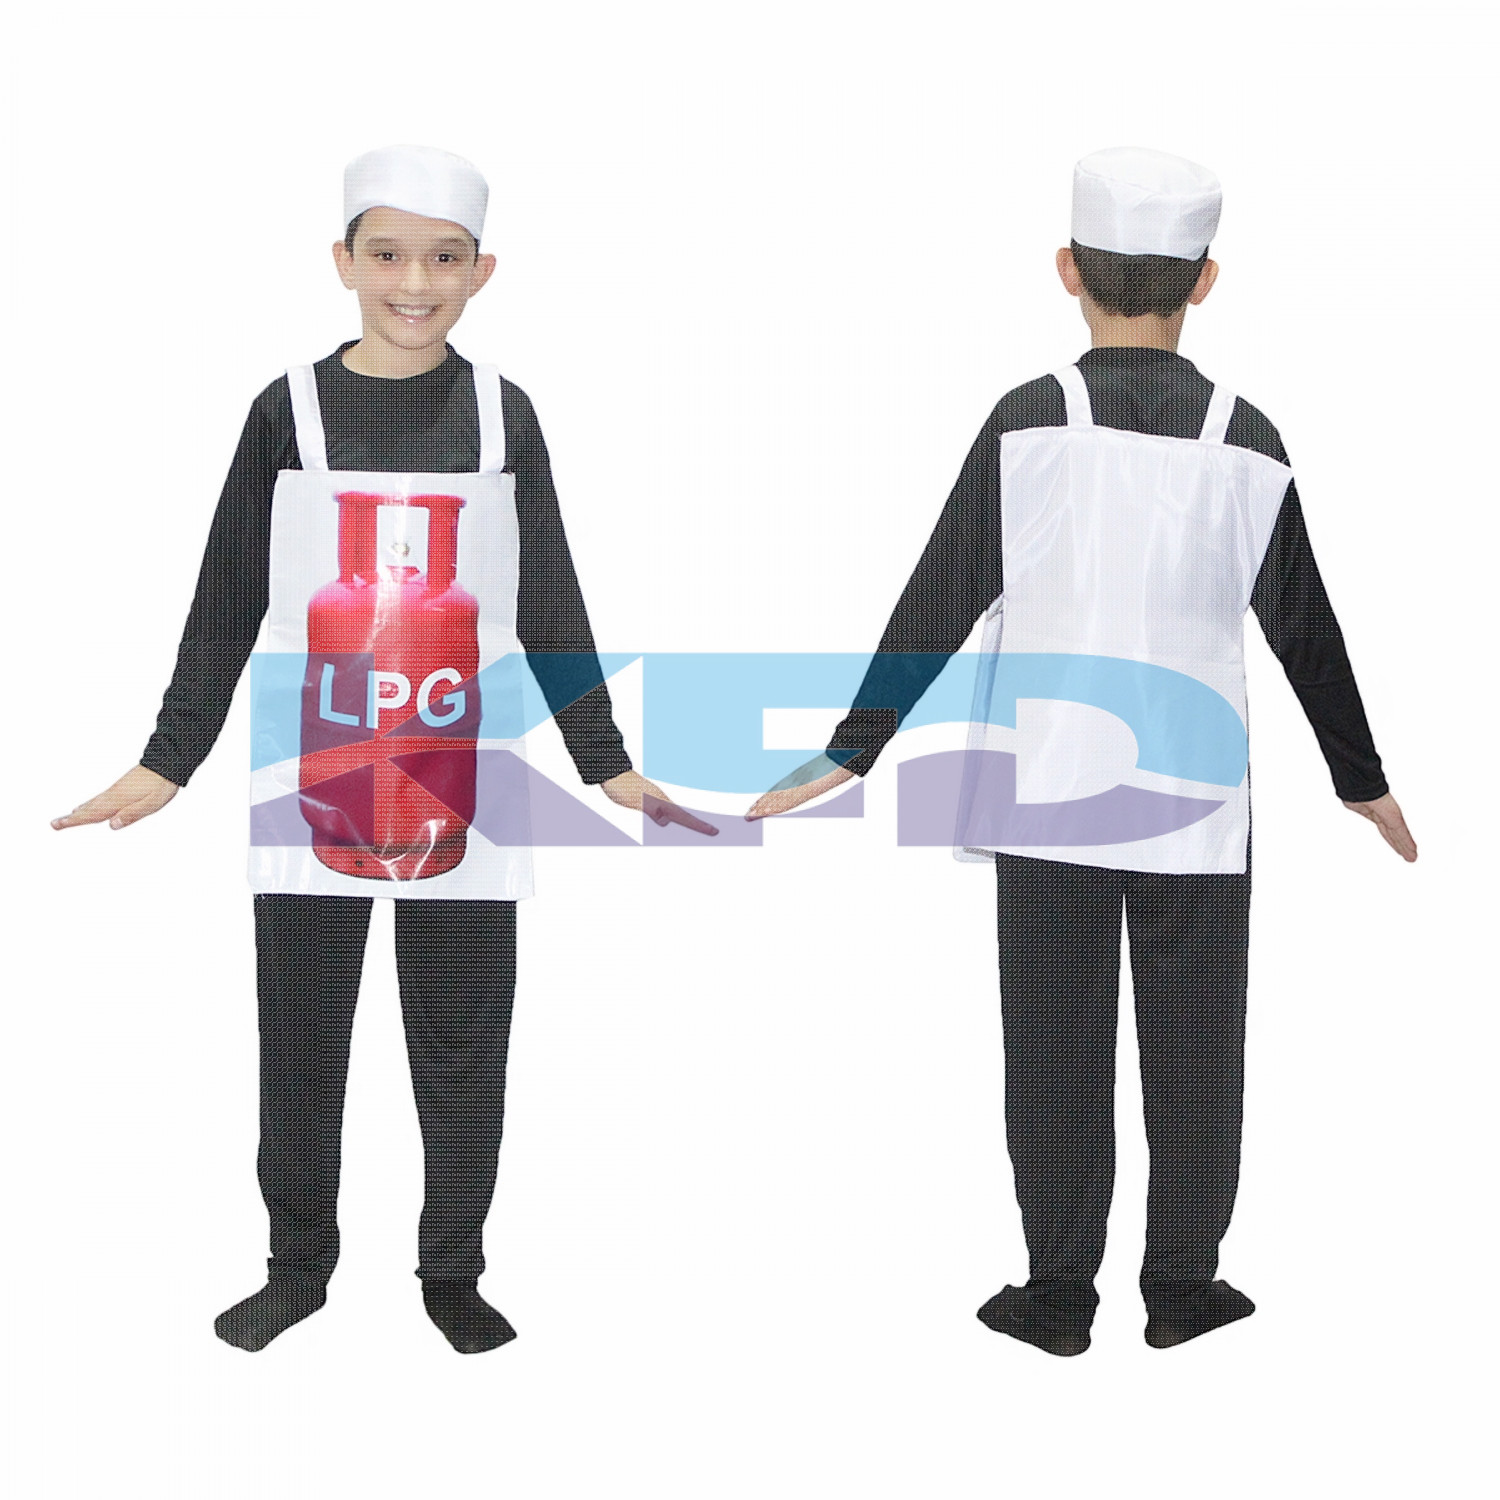 LPG Gas Cylinder Costume For Kids/Object Fancy Dress For Kids/For Kids Annual function/Theme Party/Competition/Stage Shows/Birthday Party Dress